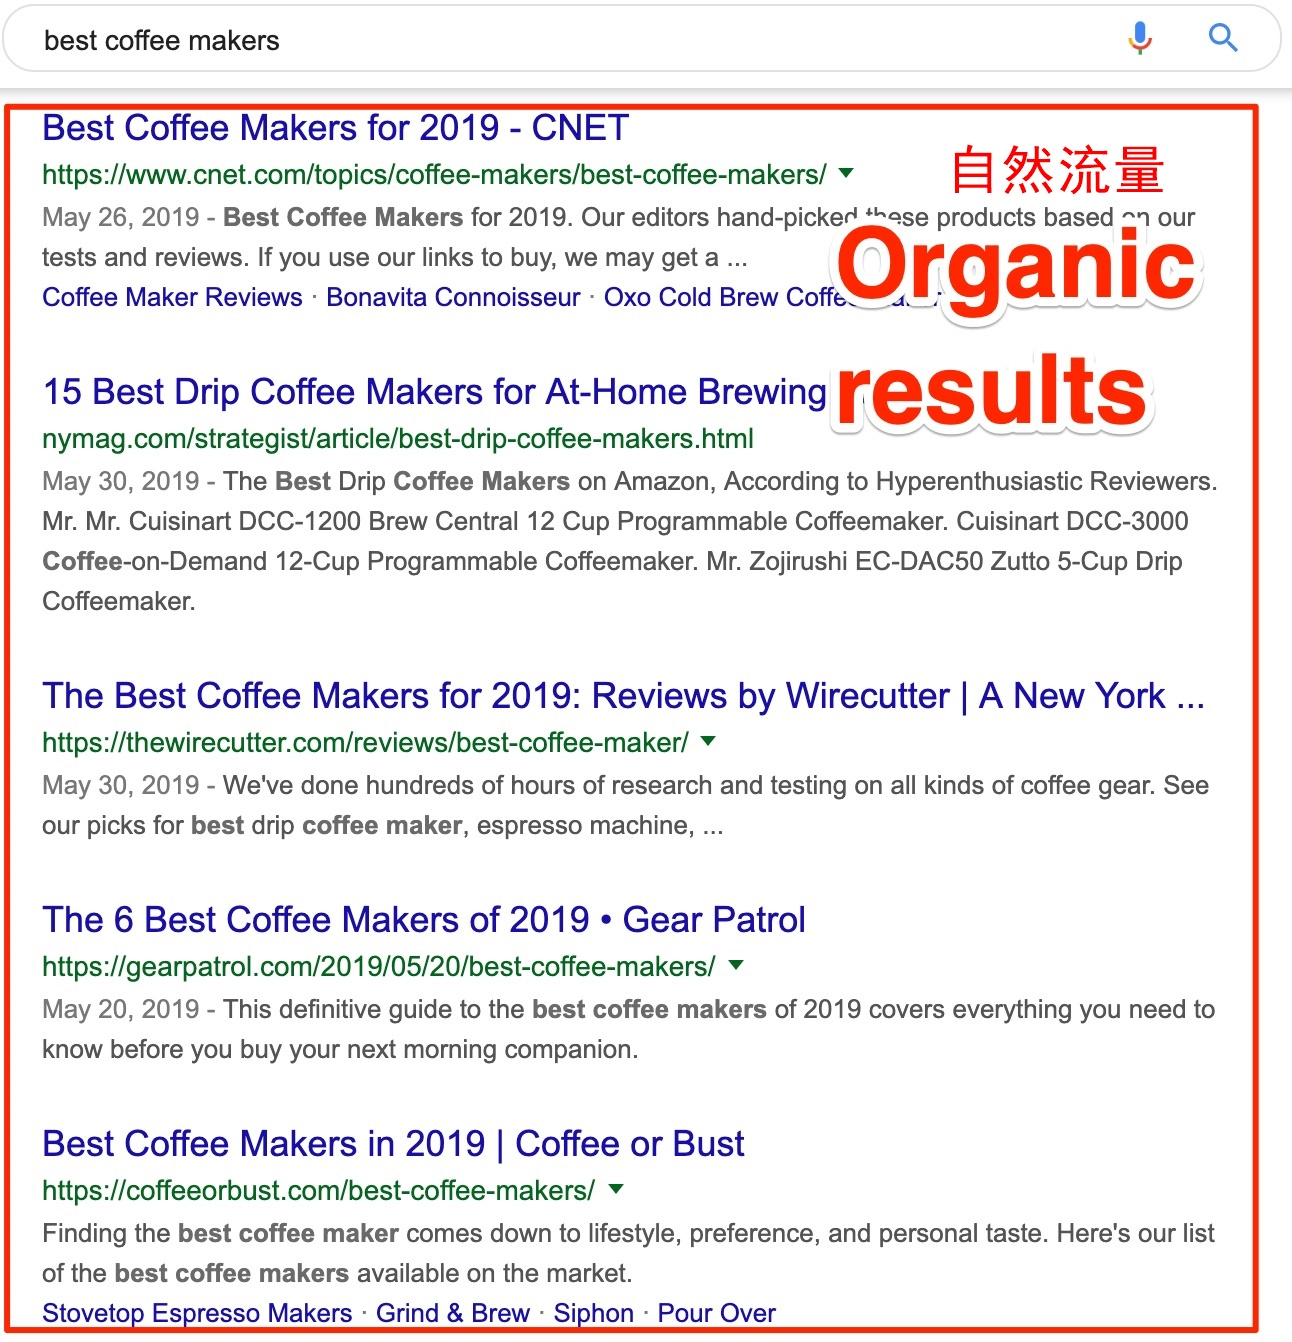 organic results best coffee makers